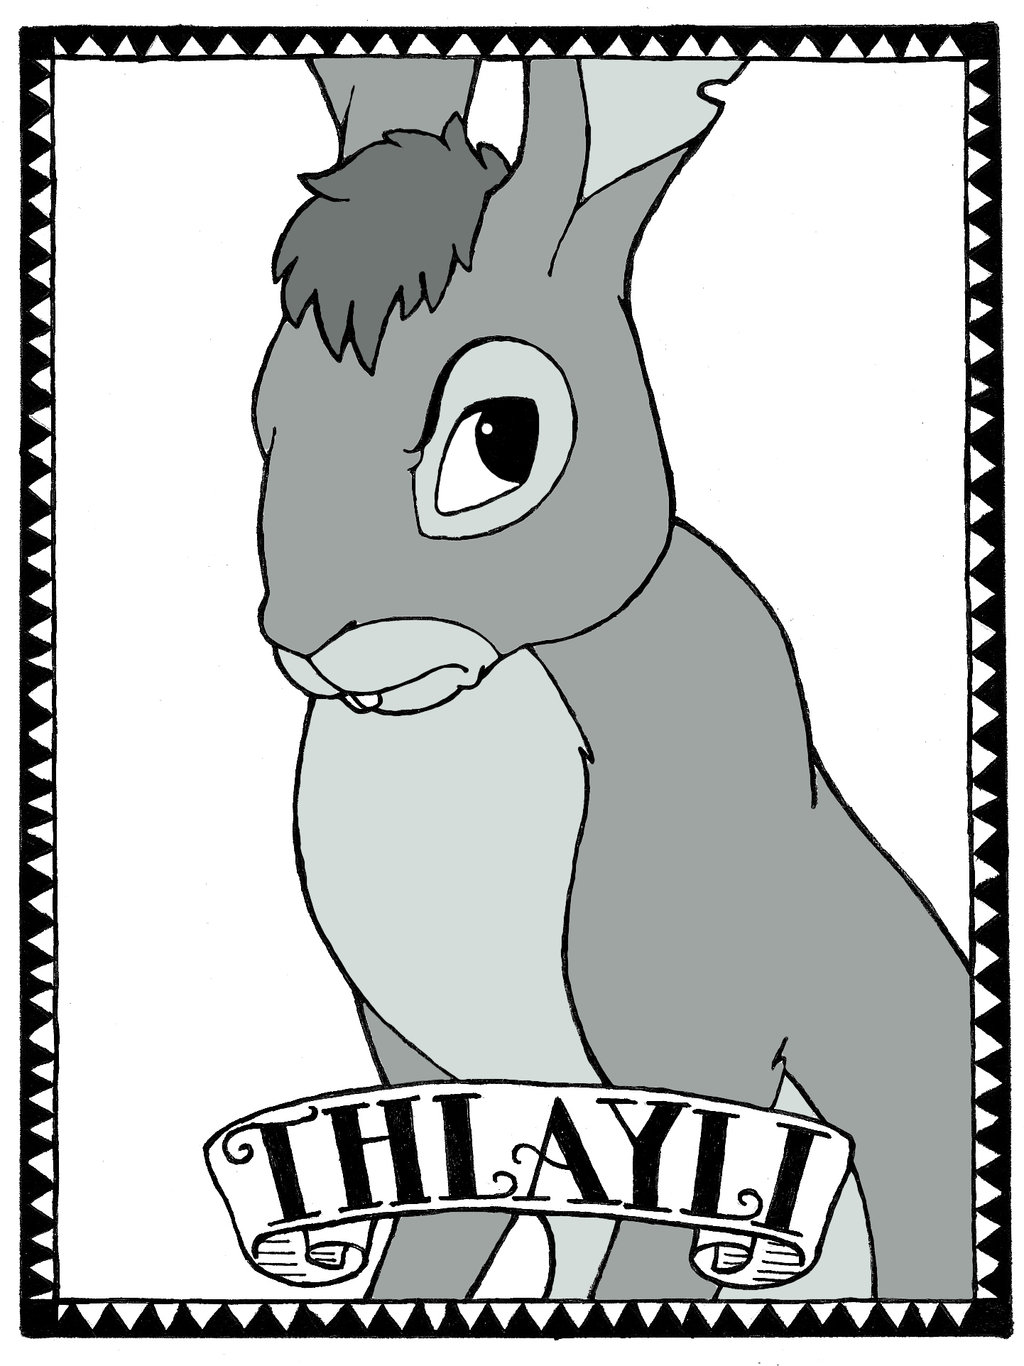 Watership Down Wallpaper: Thlayli by LostInTheTrees on DeviantArt